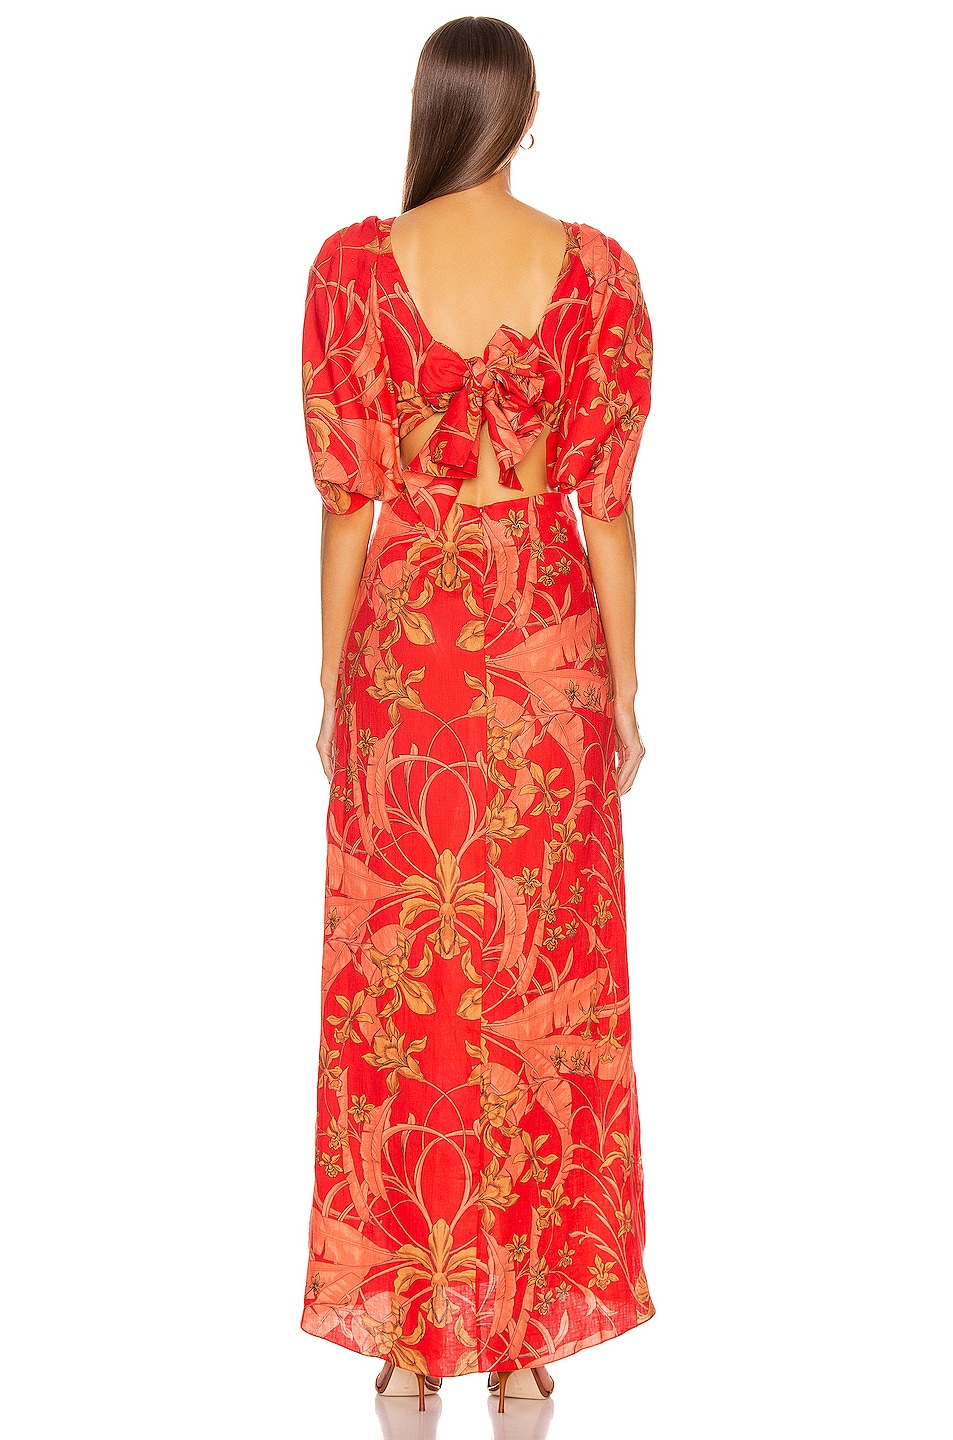 Image 3 of Johanna Ortiz Botanical Study Maxi Dress in Imperial Red & Camel